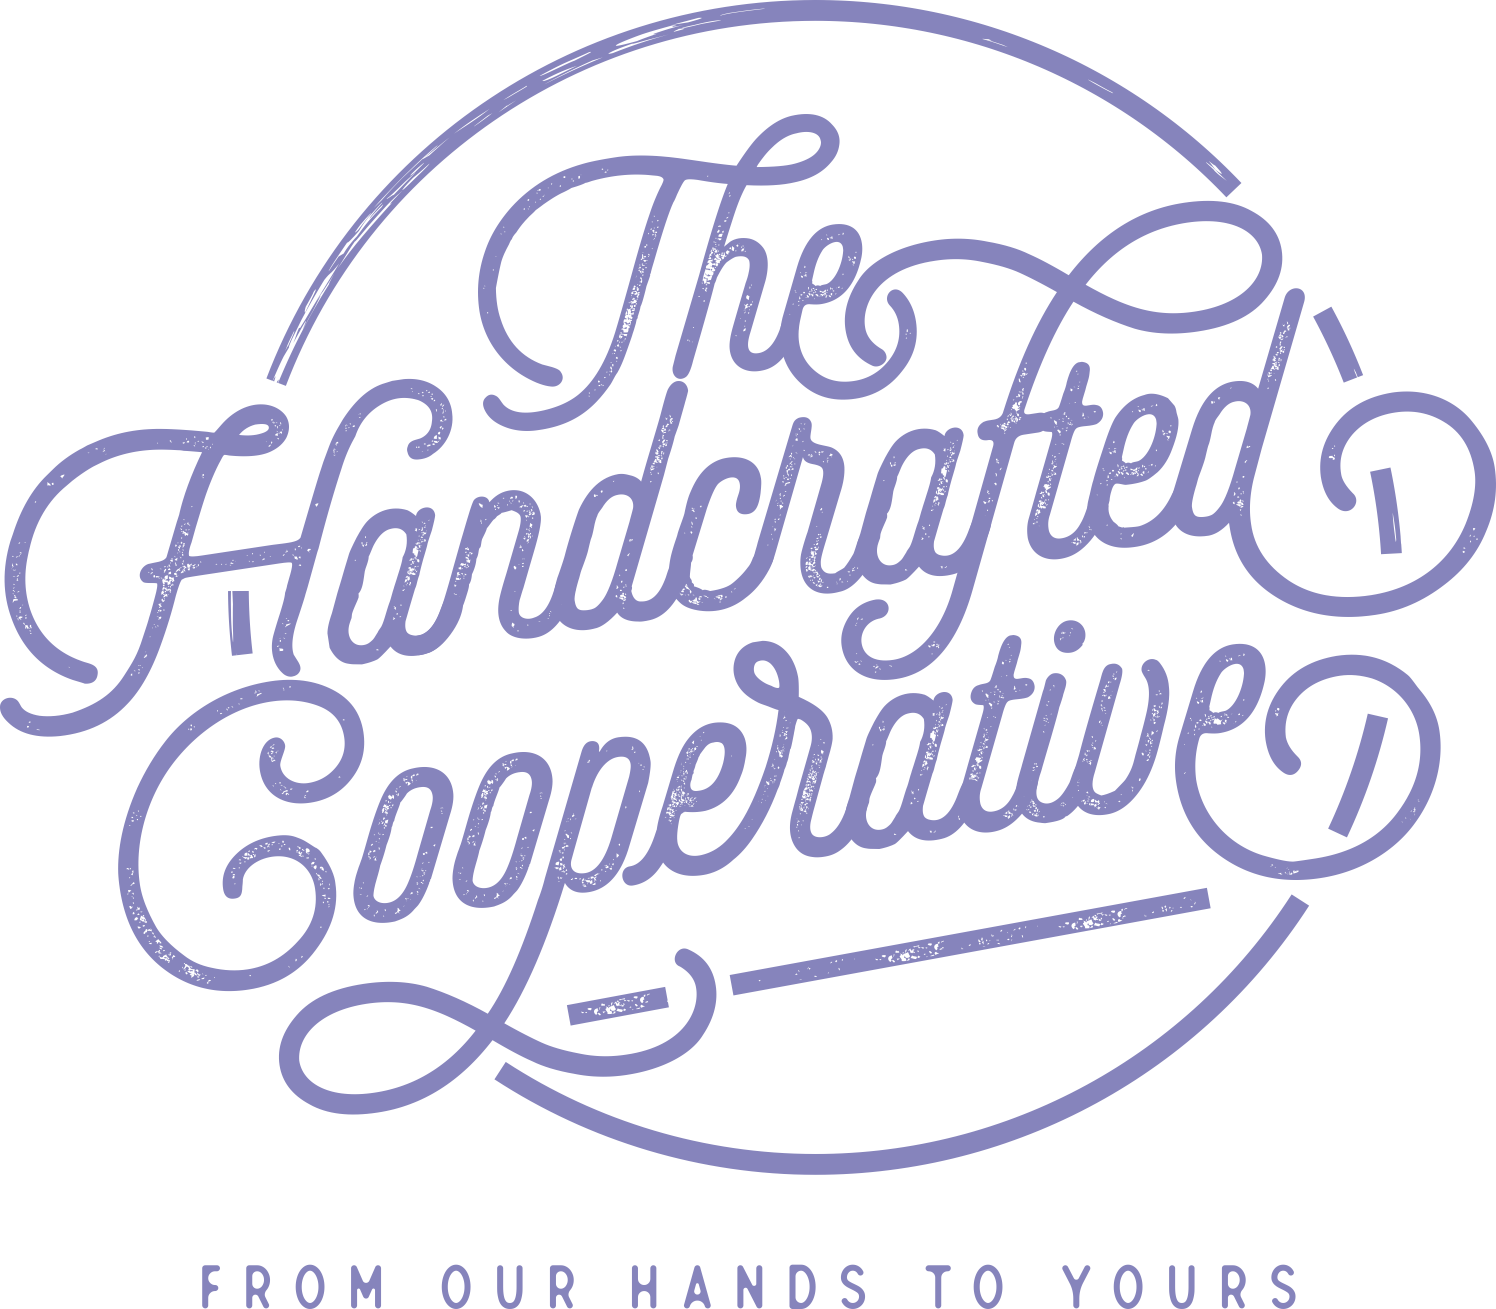 The Handcrafted Cooperative